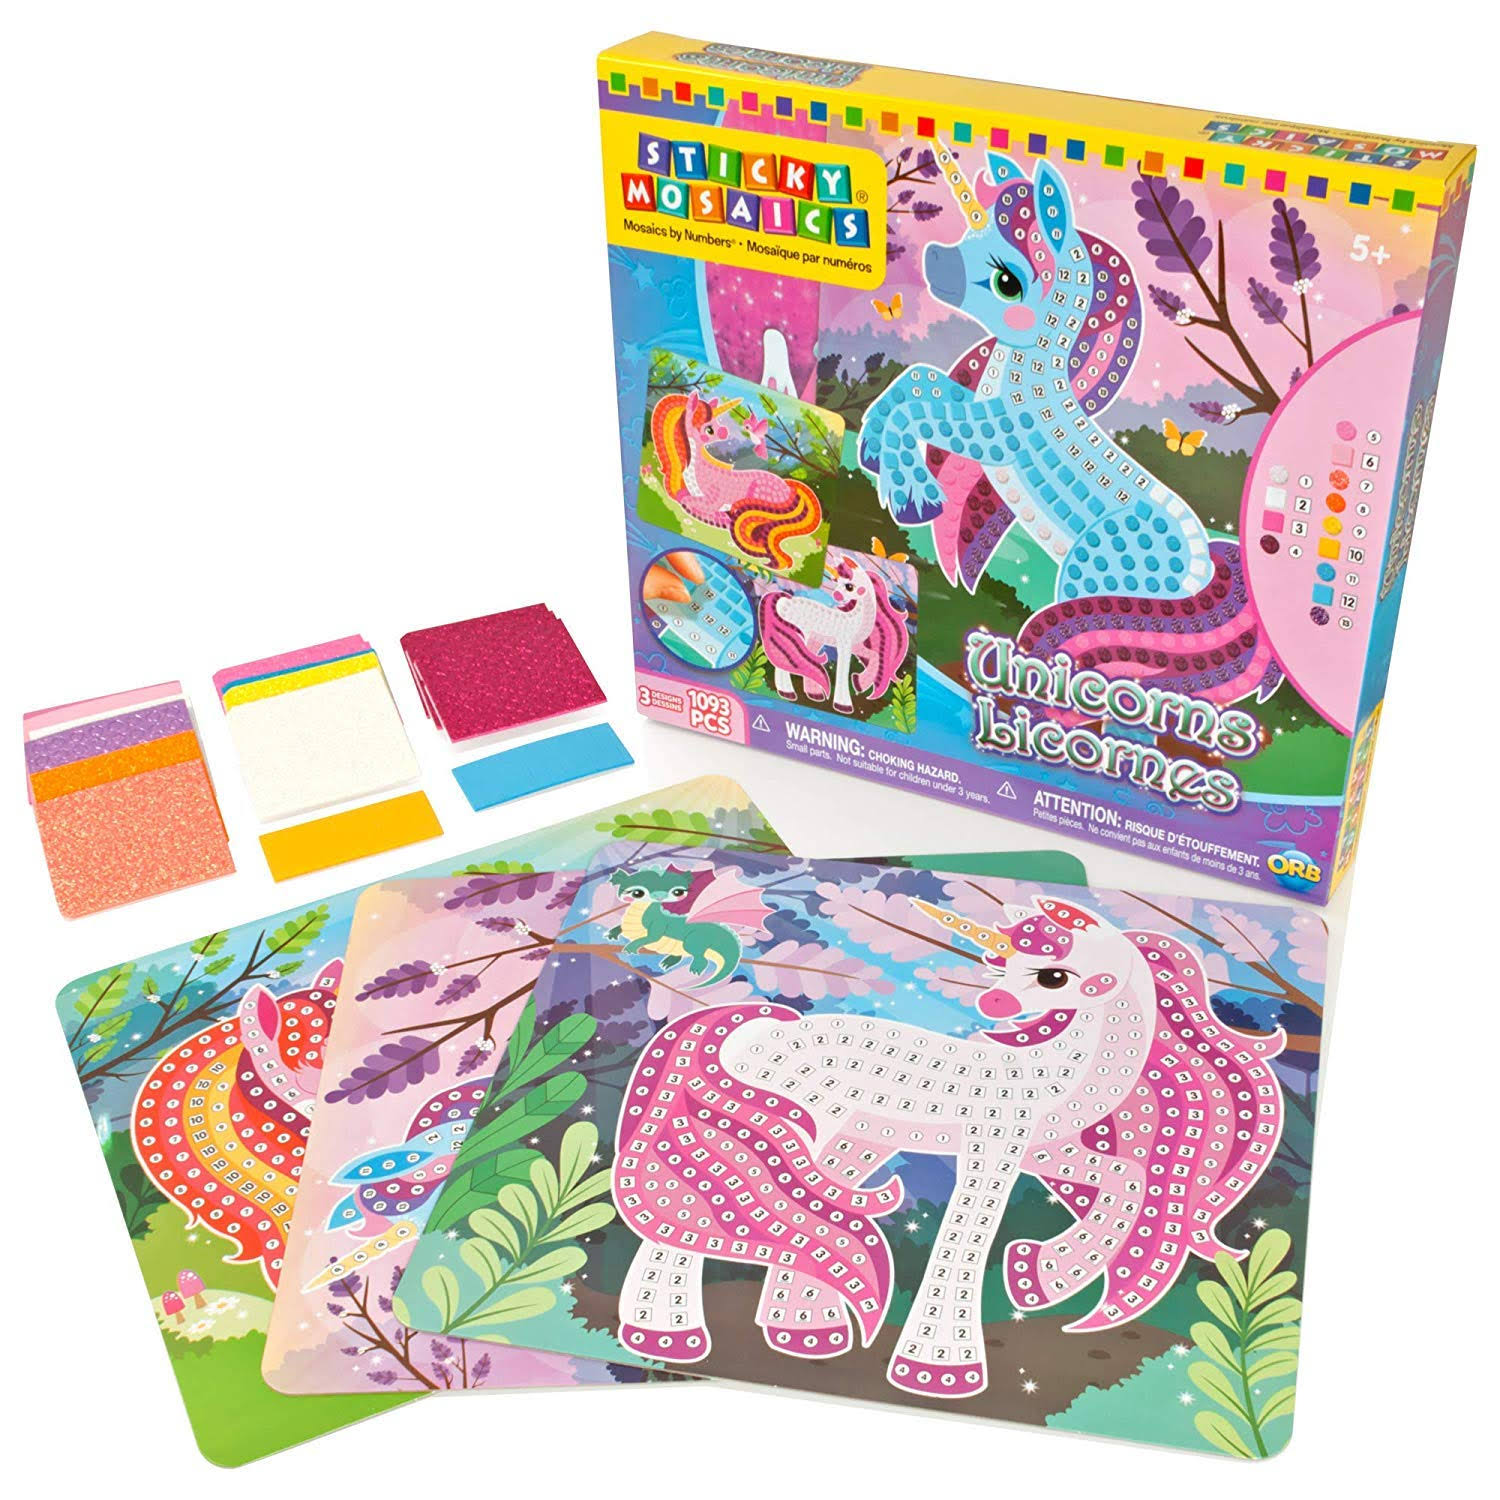 Sticky Mosaics Unicorns Craft Kit